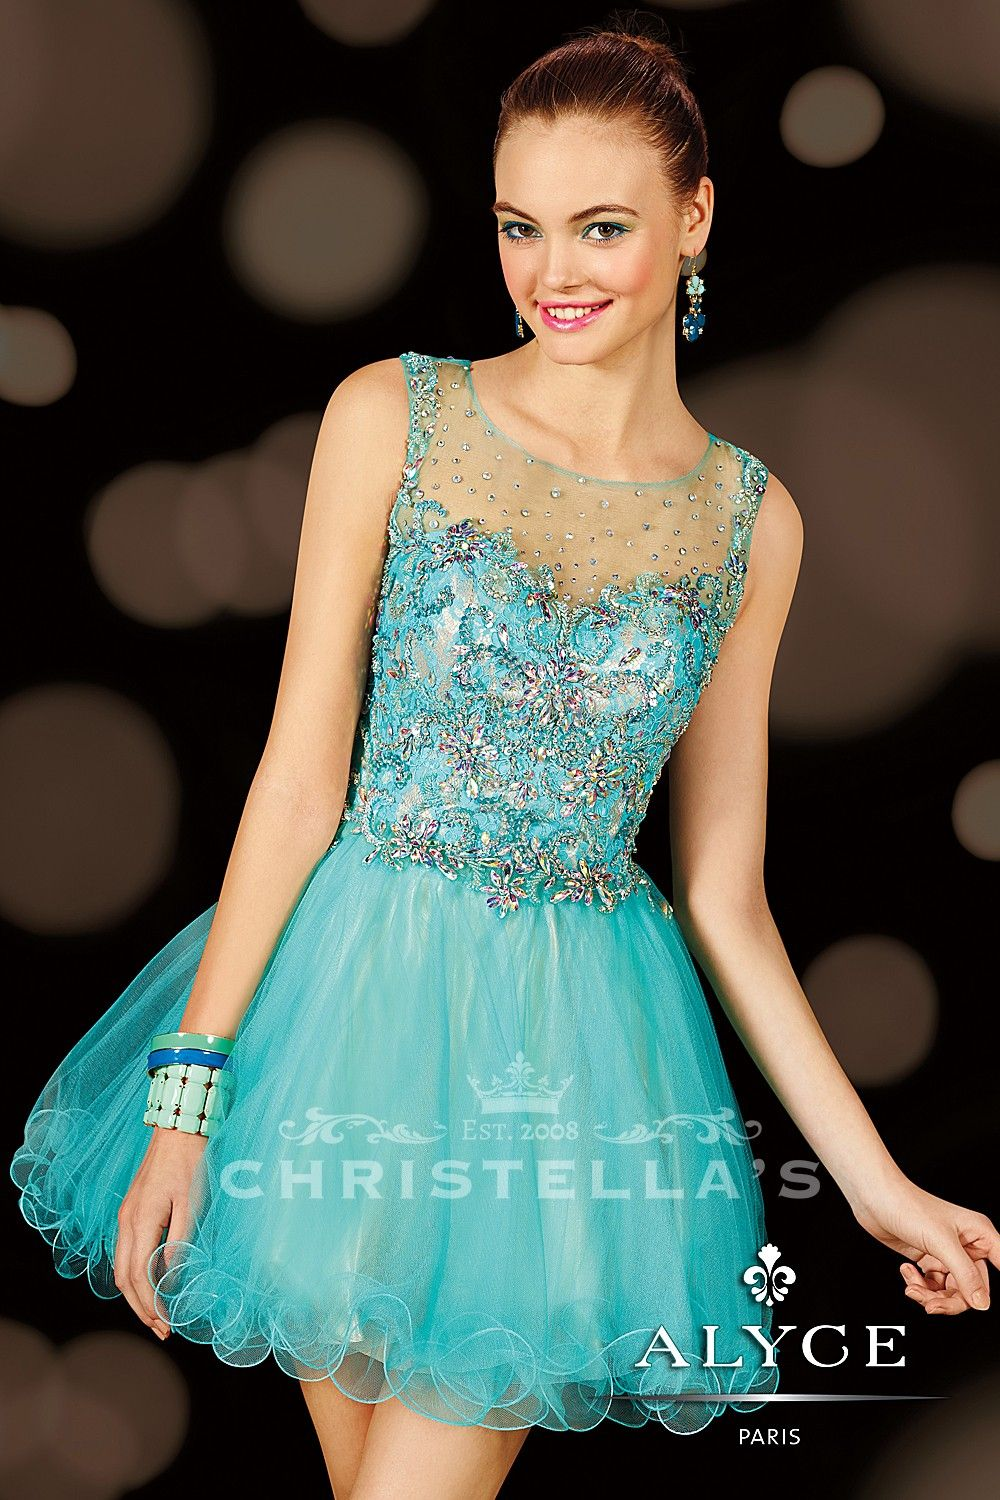 Scattered sparkle on this dazzling short dress is divine and dreamy ...